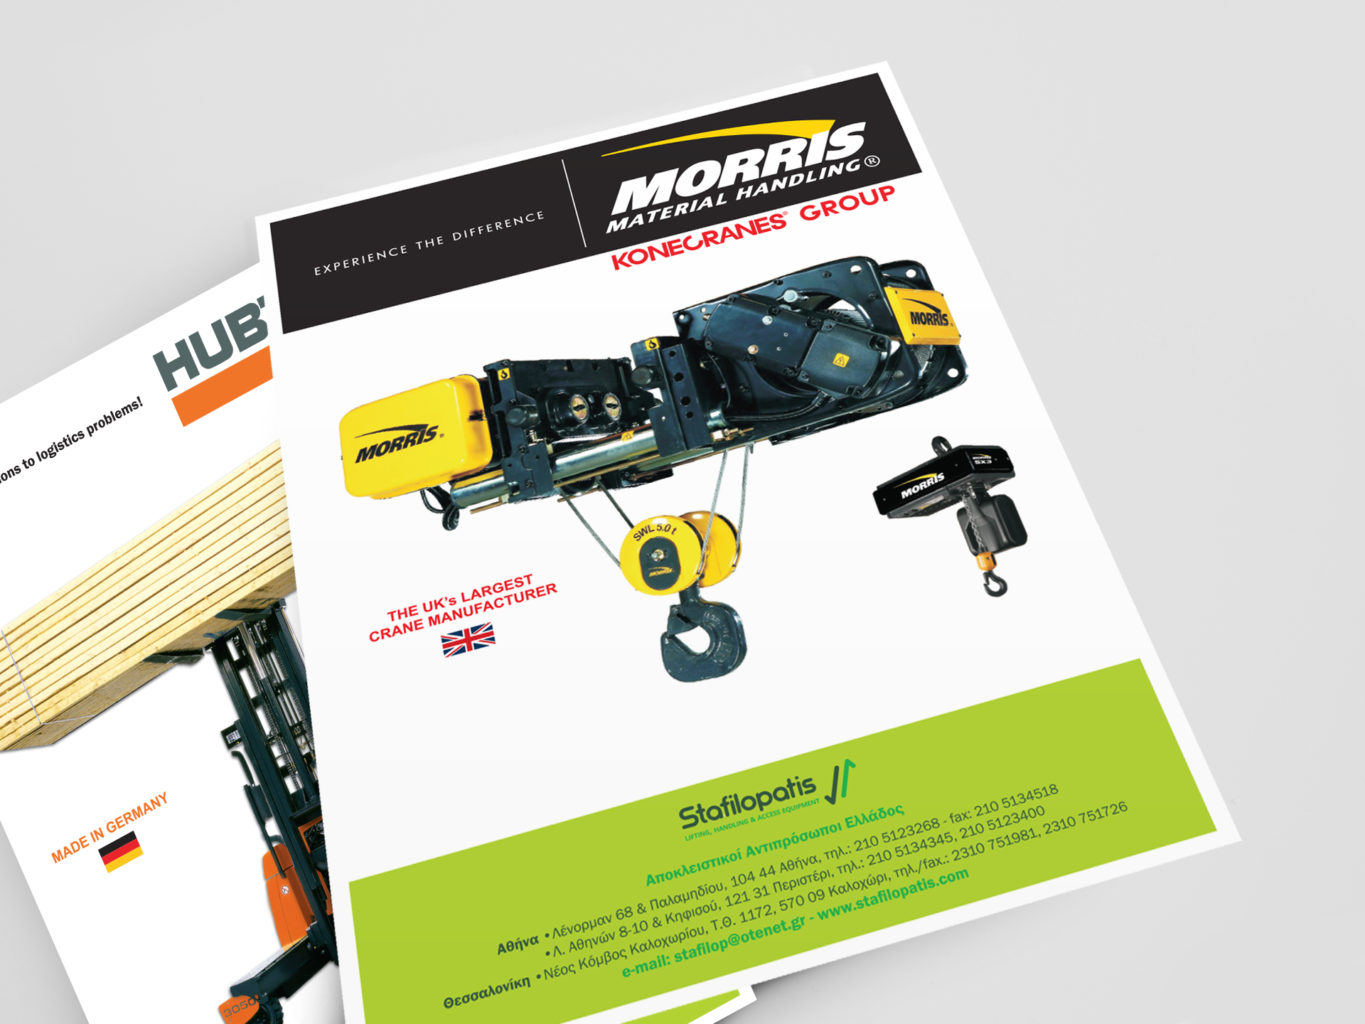 Stafilopatis lifting, handling and access equipment brochures